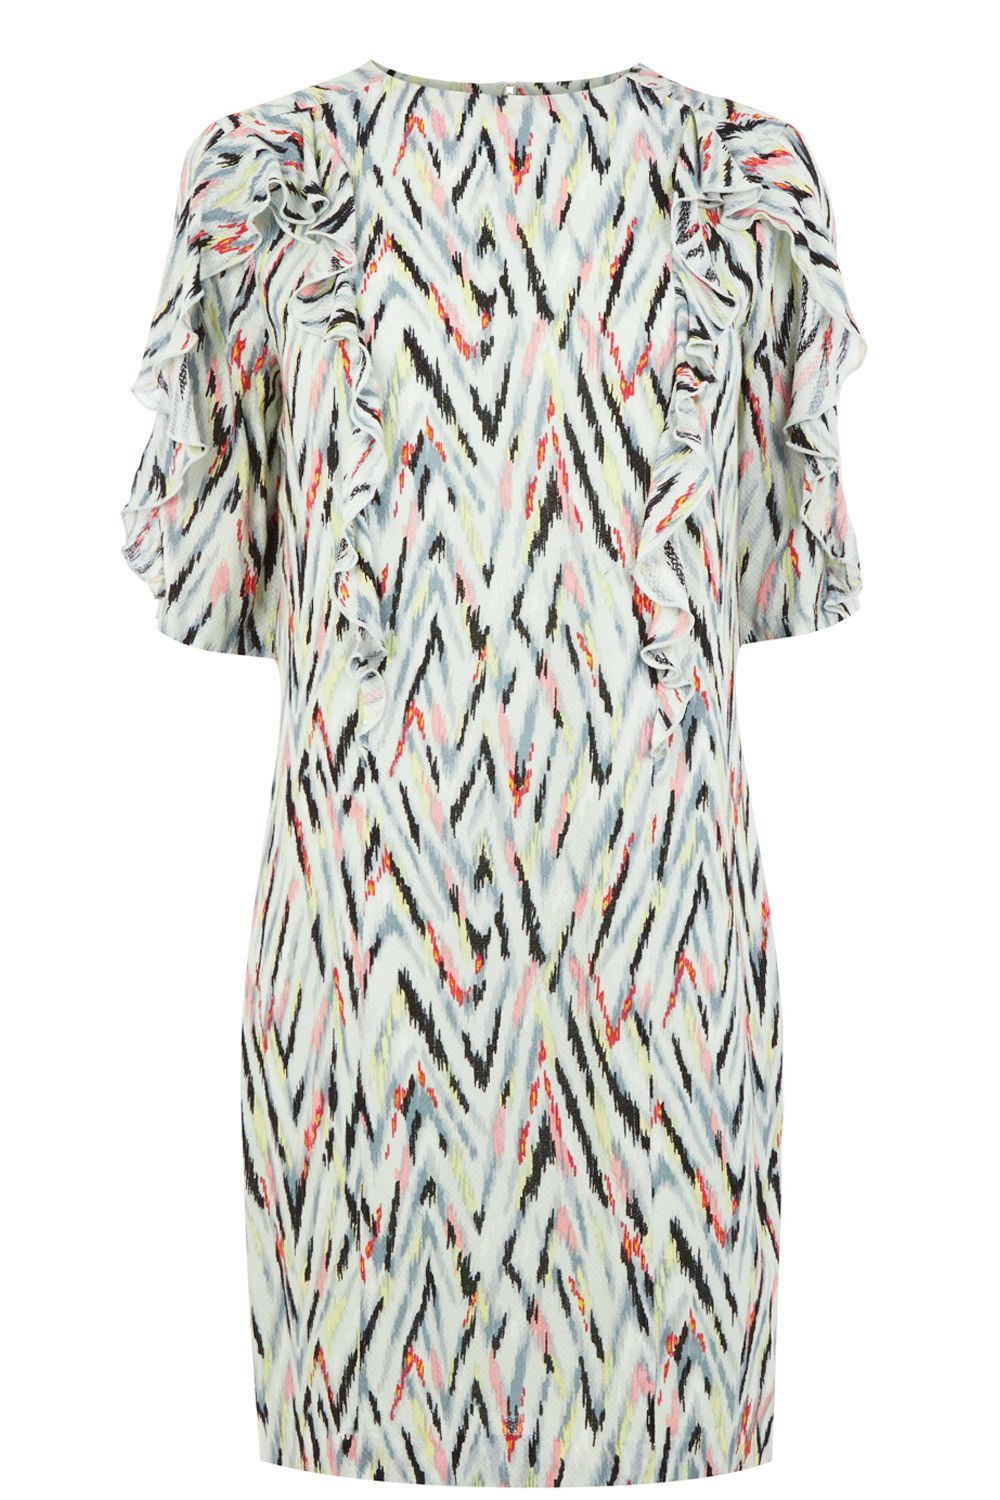 Zig Zag Print Ruffle Dress, Multi Coloured - style: shift; predominant colour: ivory/cream; secondary colour: charcoal; occasions: evening; length: just above the knee; fit: body skimming; fibres: polyester/polyamide - 100%; neckline: crew; sleeve length: short sleeve; sleeve style: standard; pattern type: fabric; pattern: patterned/print; texture group: woven light midweight; multicoloured: multicoloured; season: a/w 2016; wardrobe: event